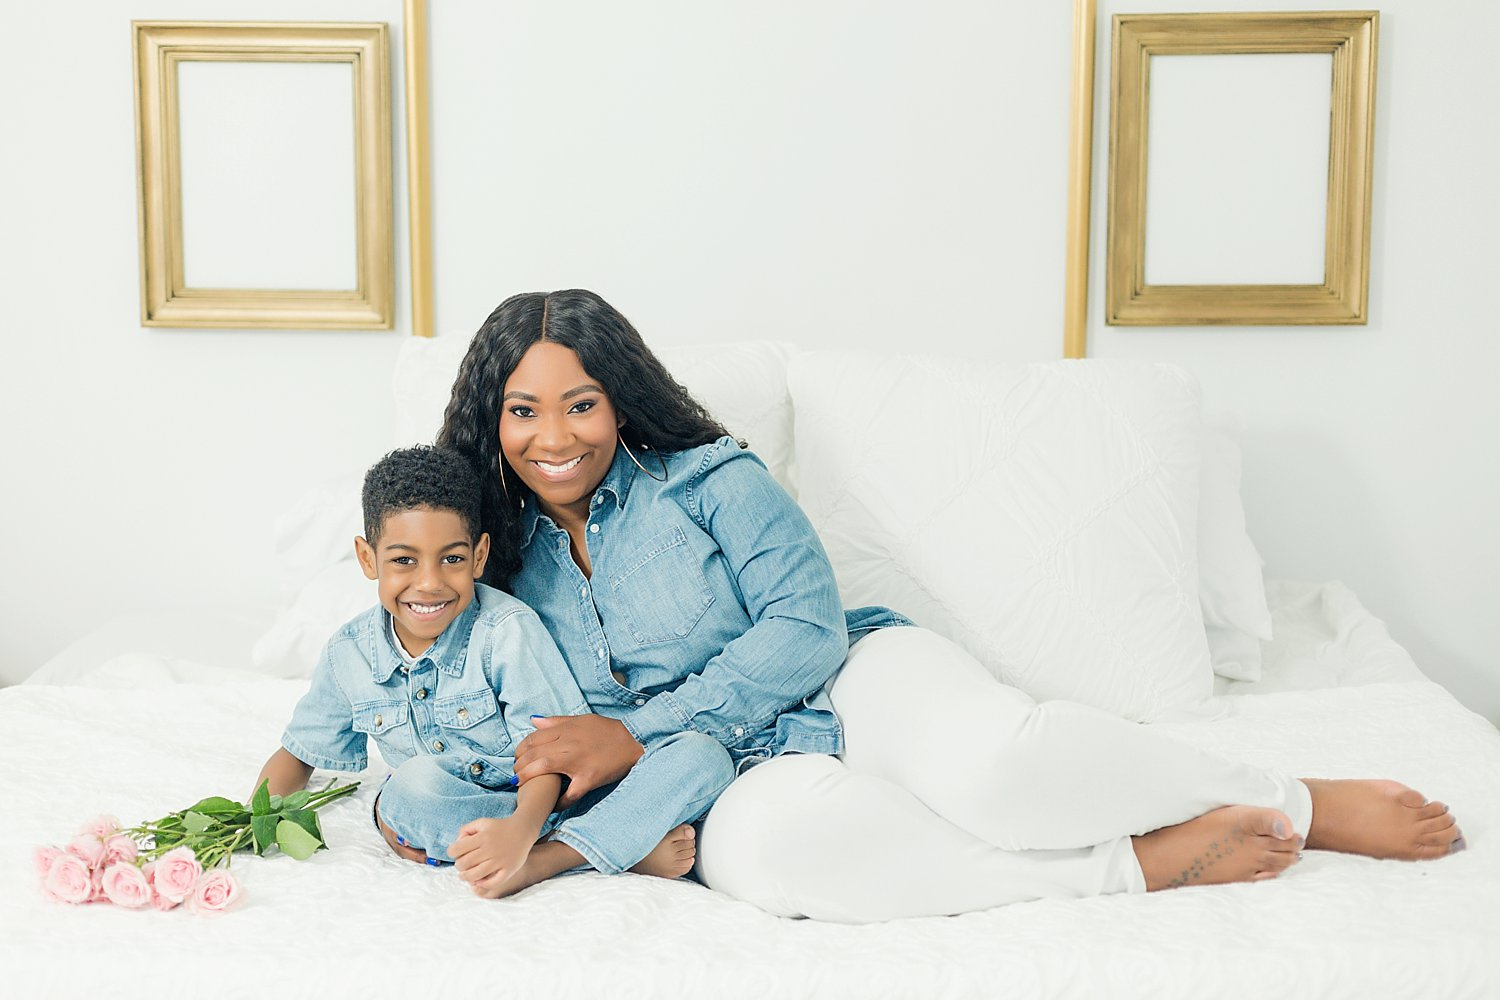 mother and son cuddling on white bed for studio portraits